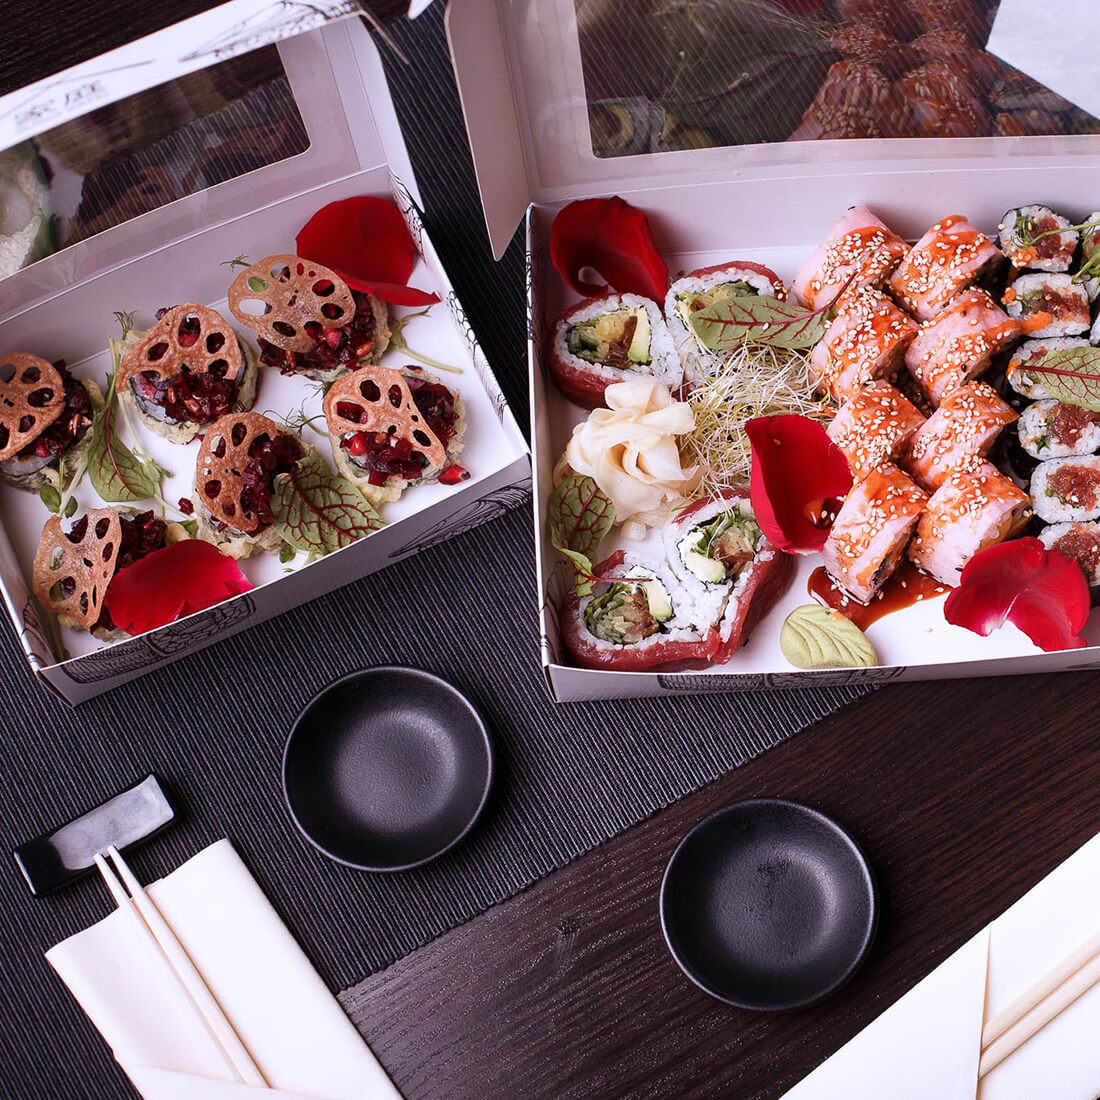 A paper sushi box is a new trend in the industry. Eco-friendly, aesthetic packaging and an excellent advertising medium.